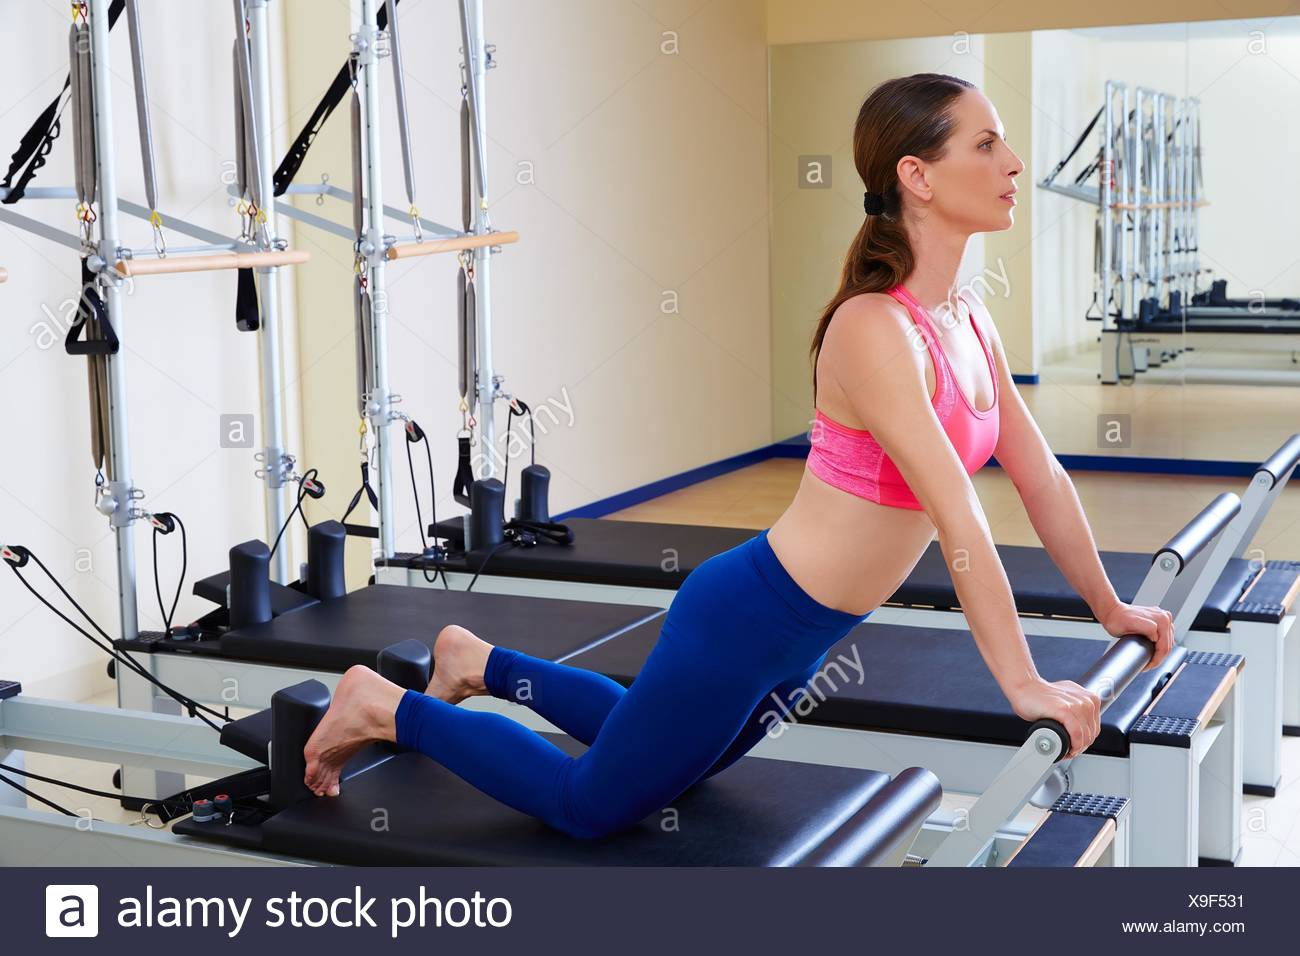 Pilates reformer woman down stretch exercise workout at gym indoor. - Stock Image